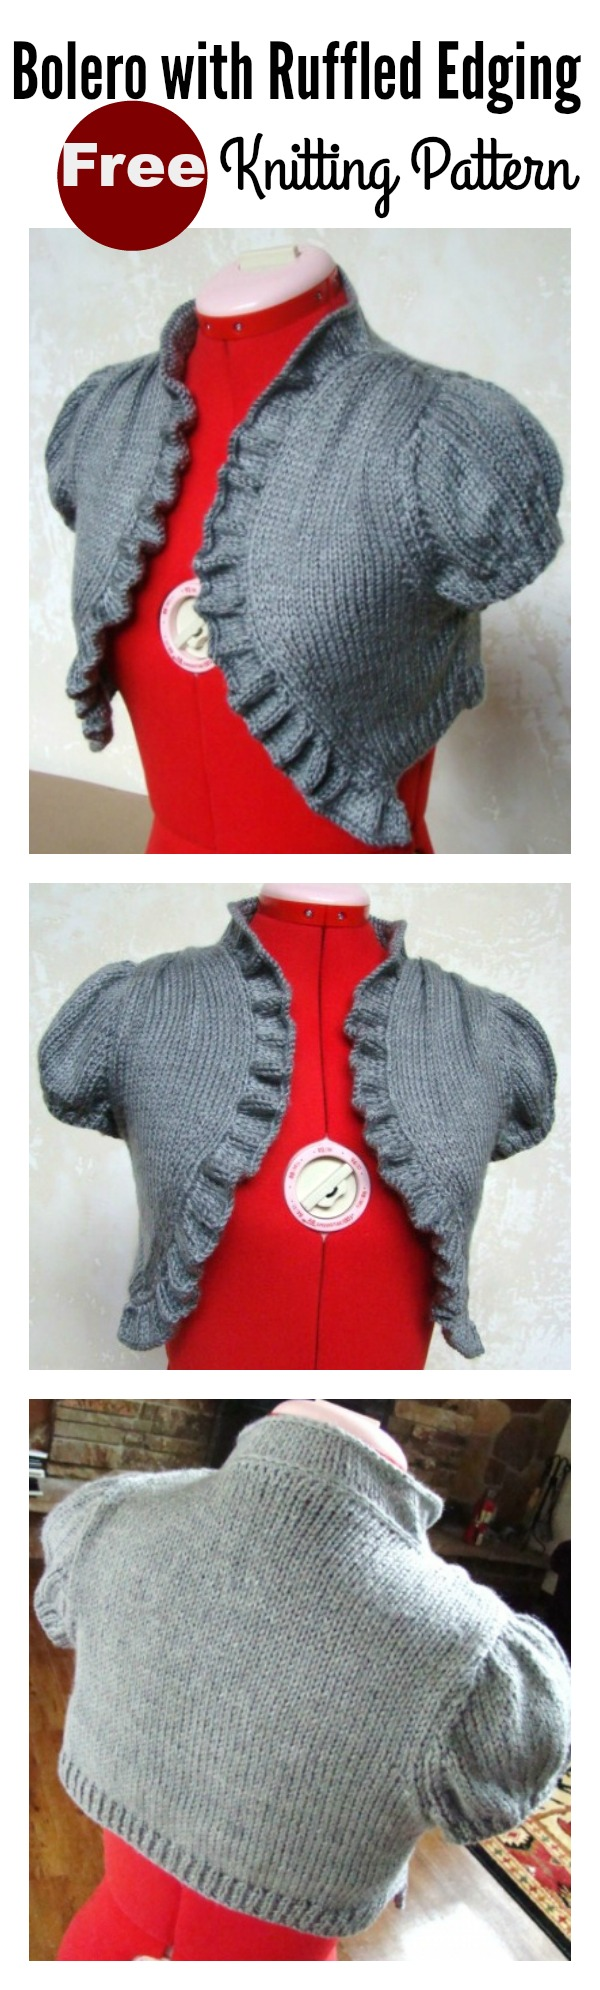 Bolero with Ruffled Edging Free Knitting Pattern